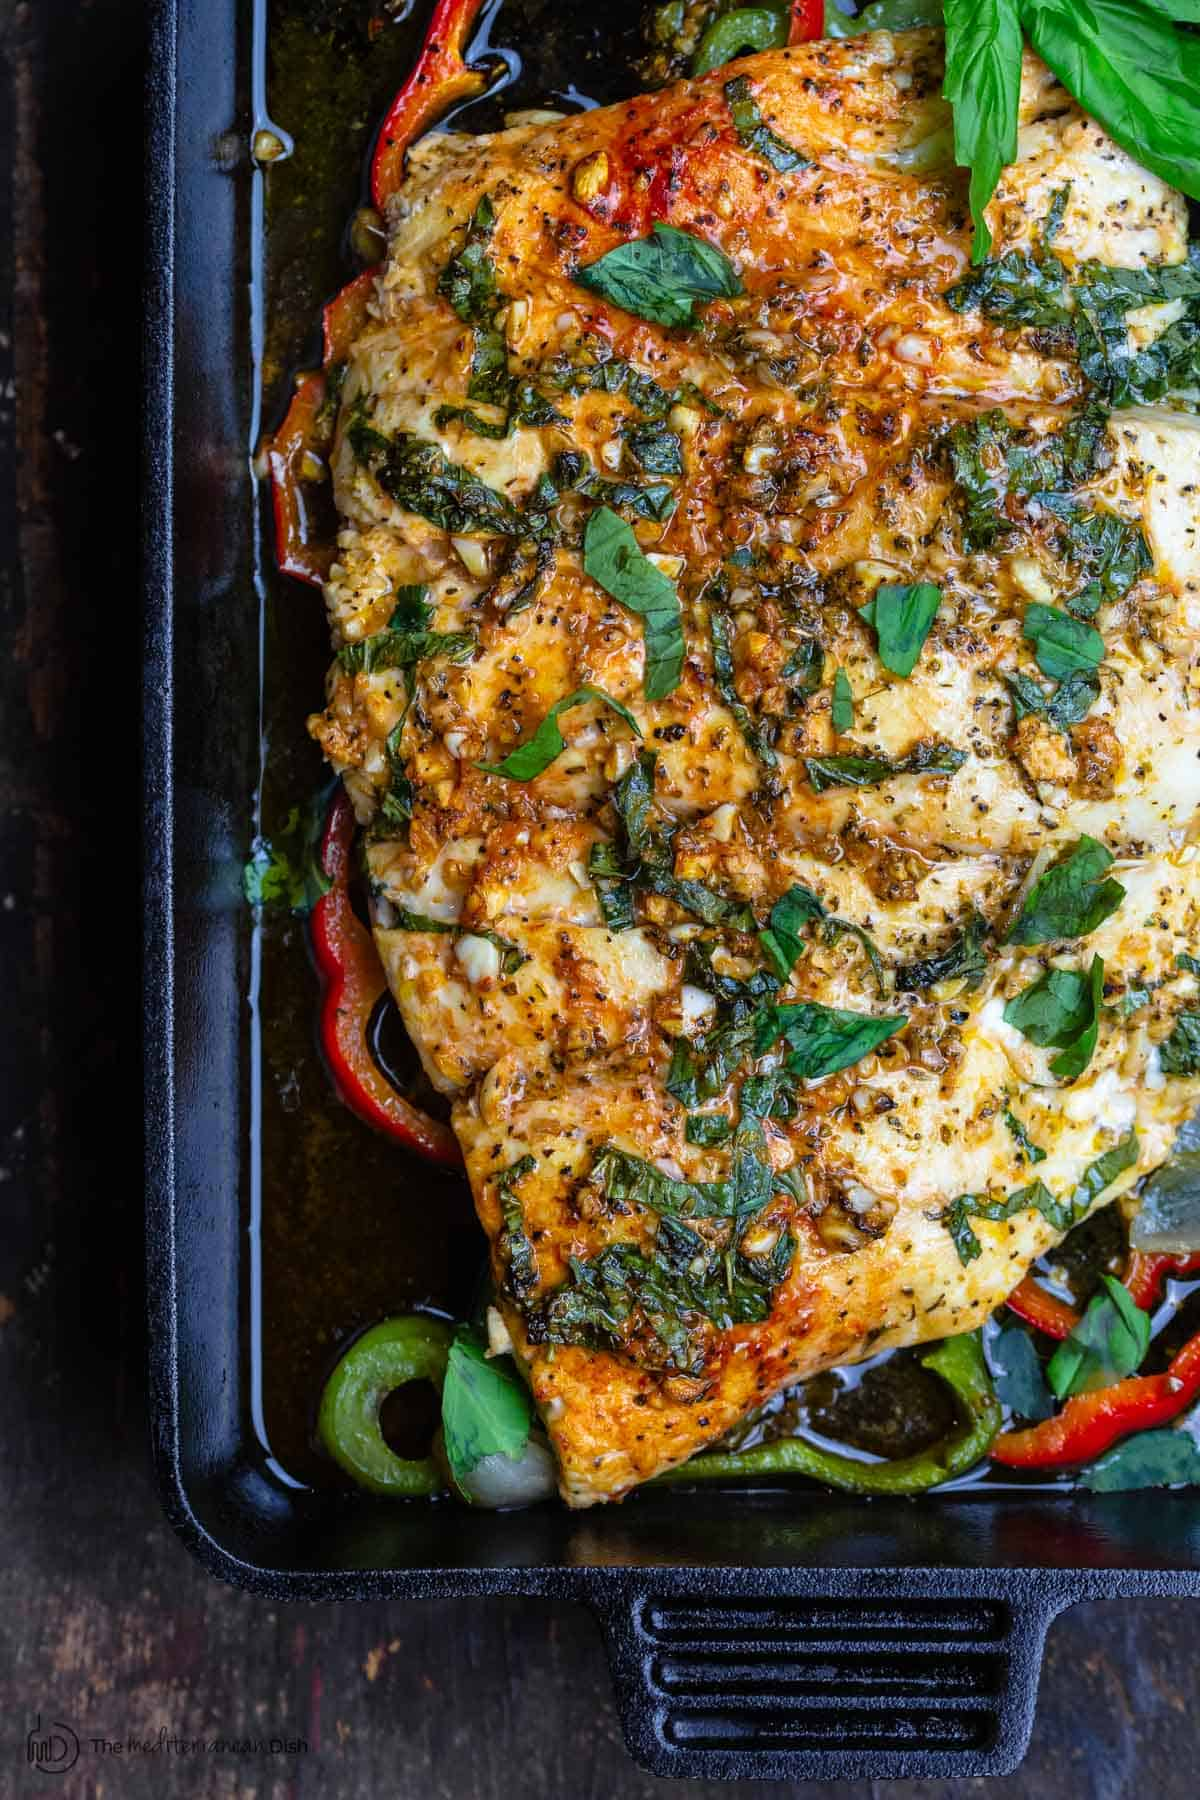 Baked fish in pan